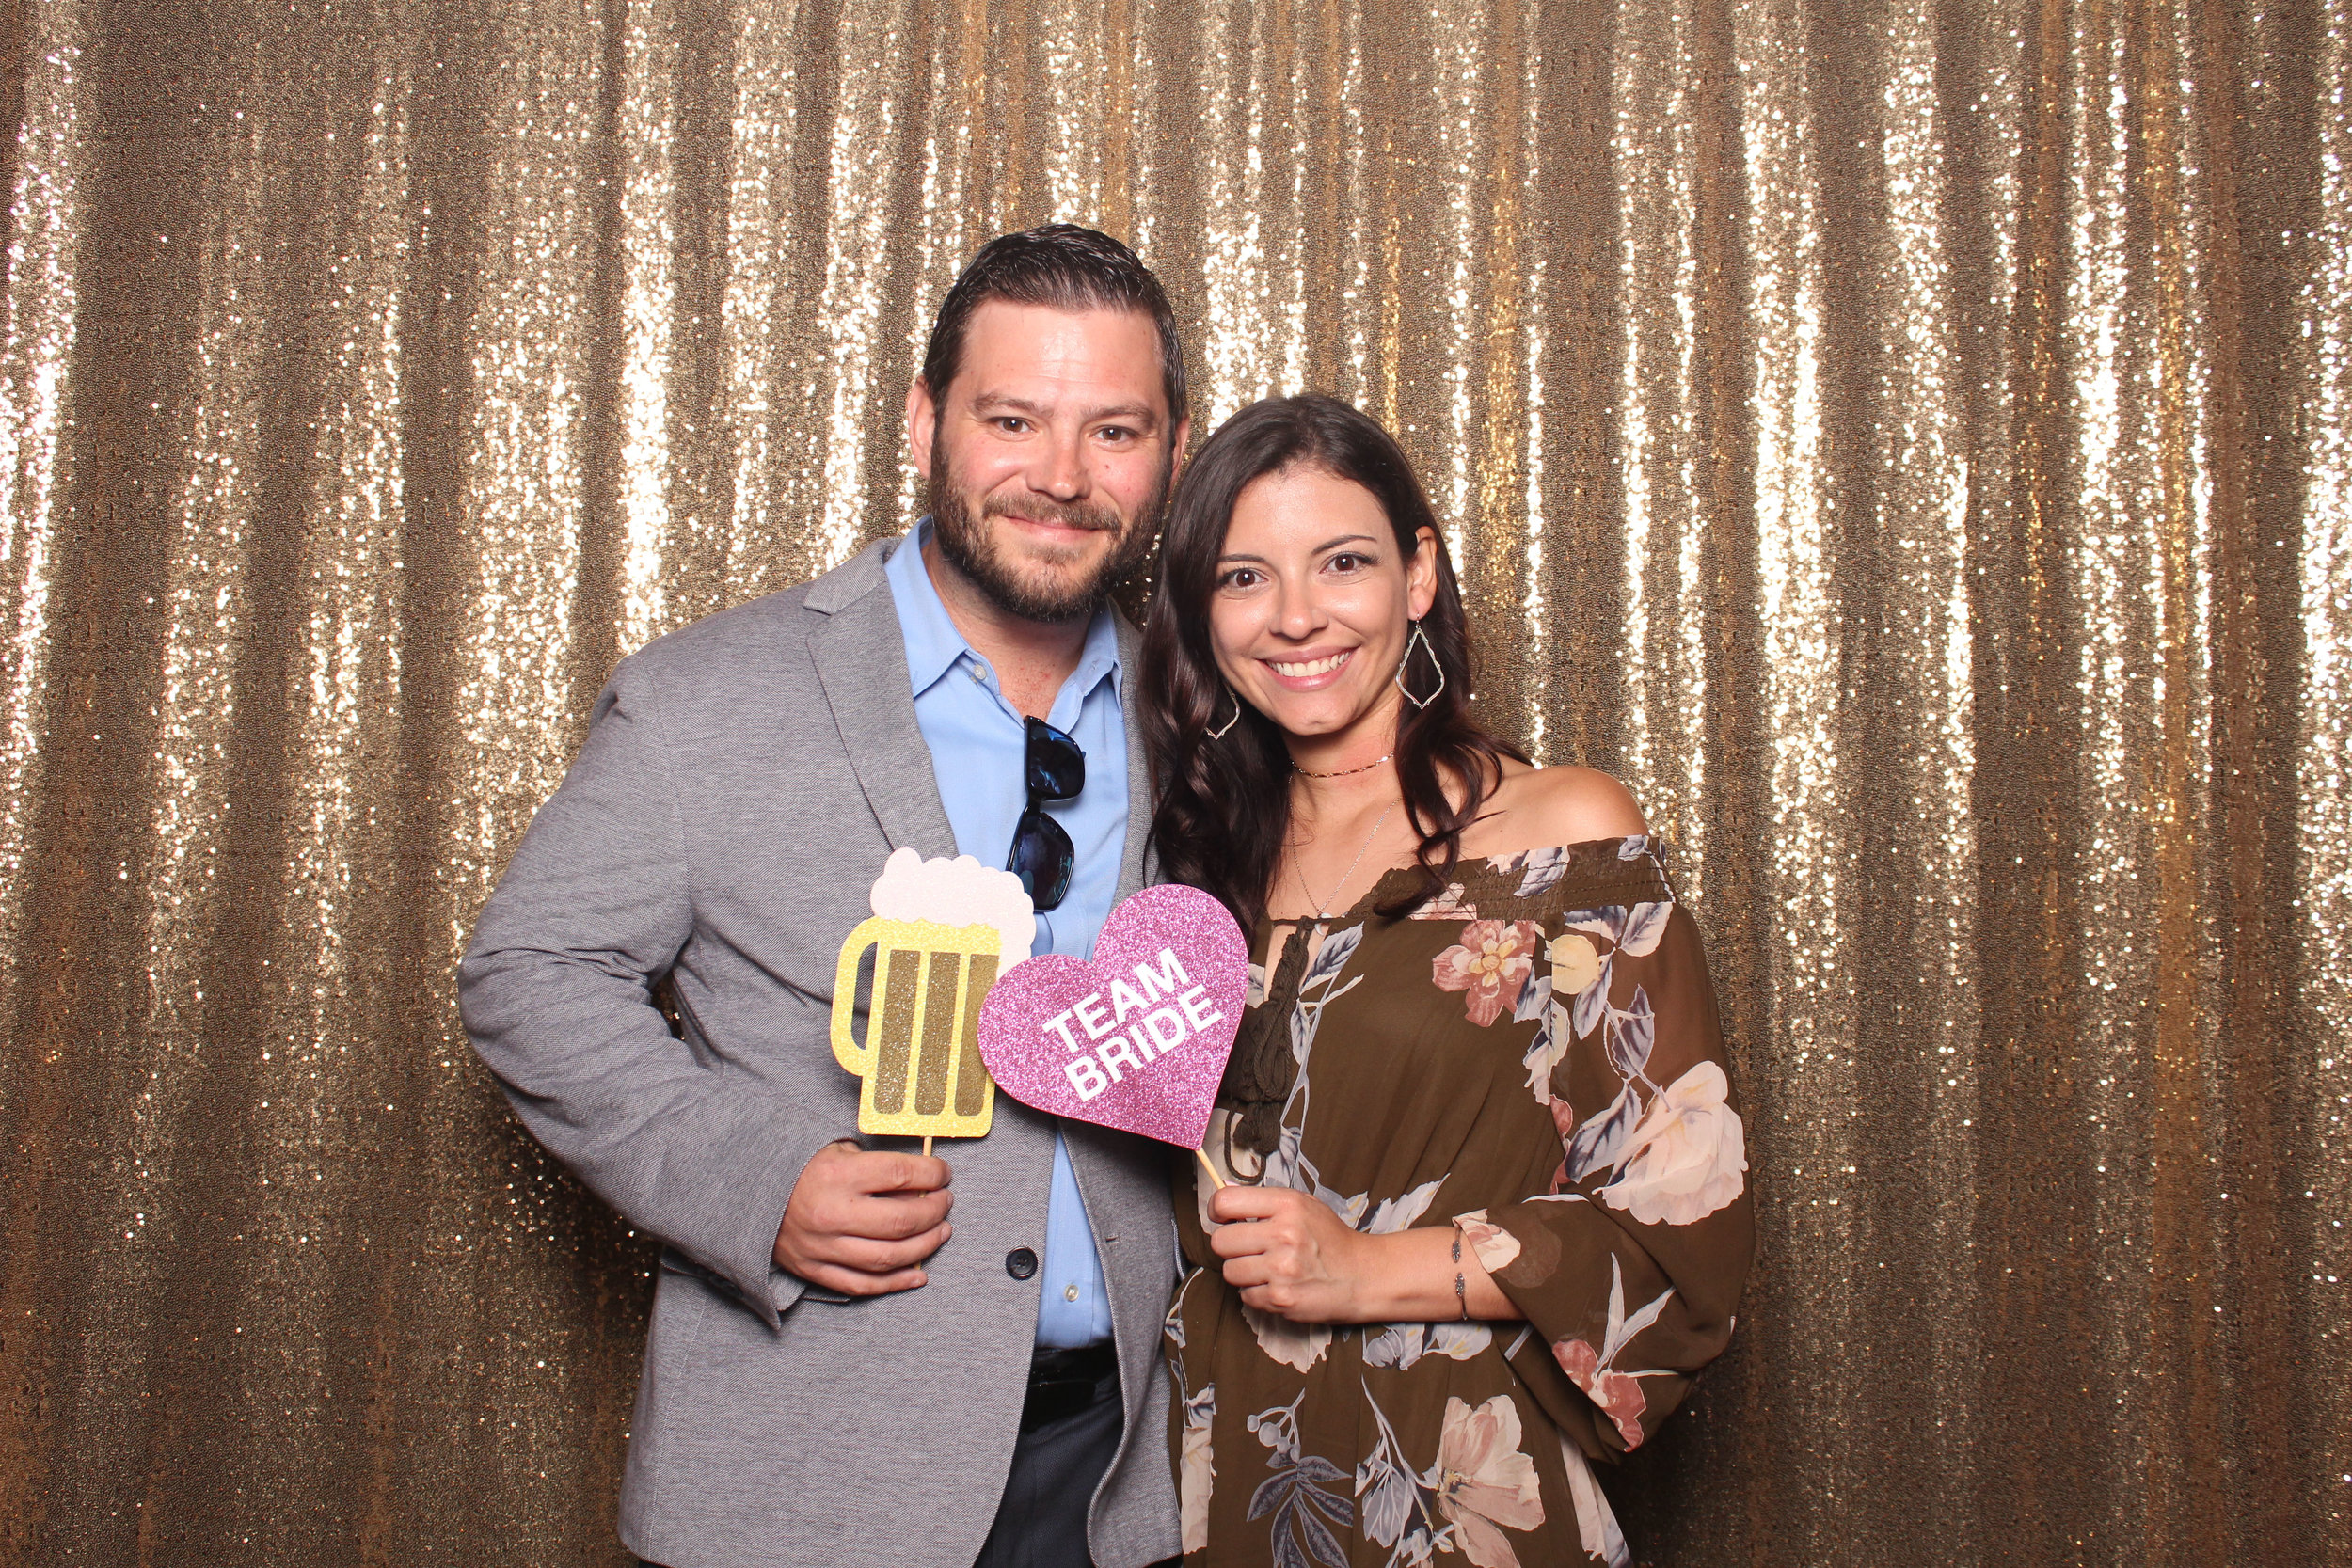 austin photo booth rental 106.jpg